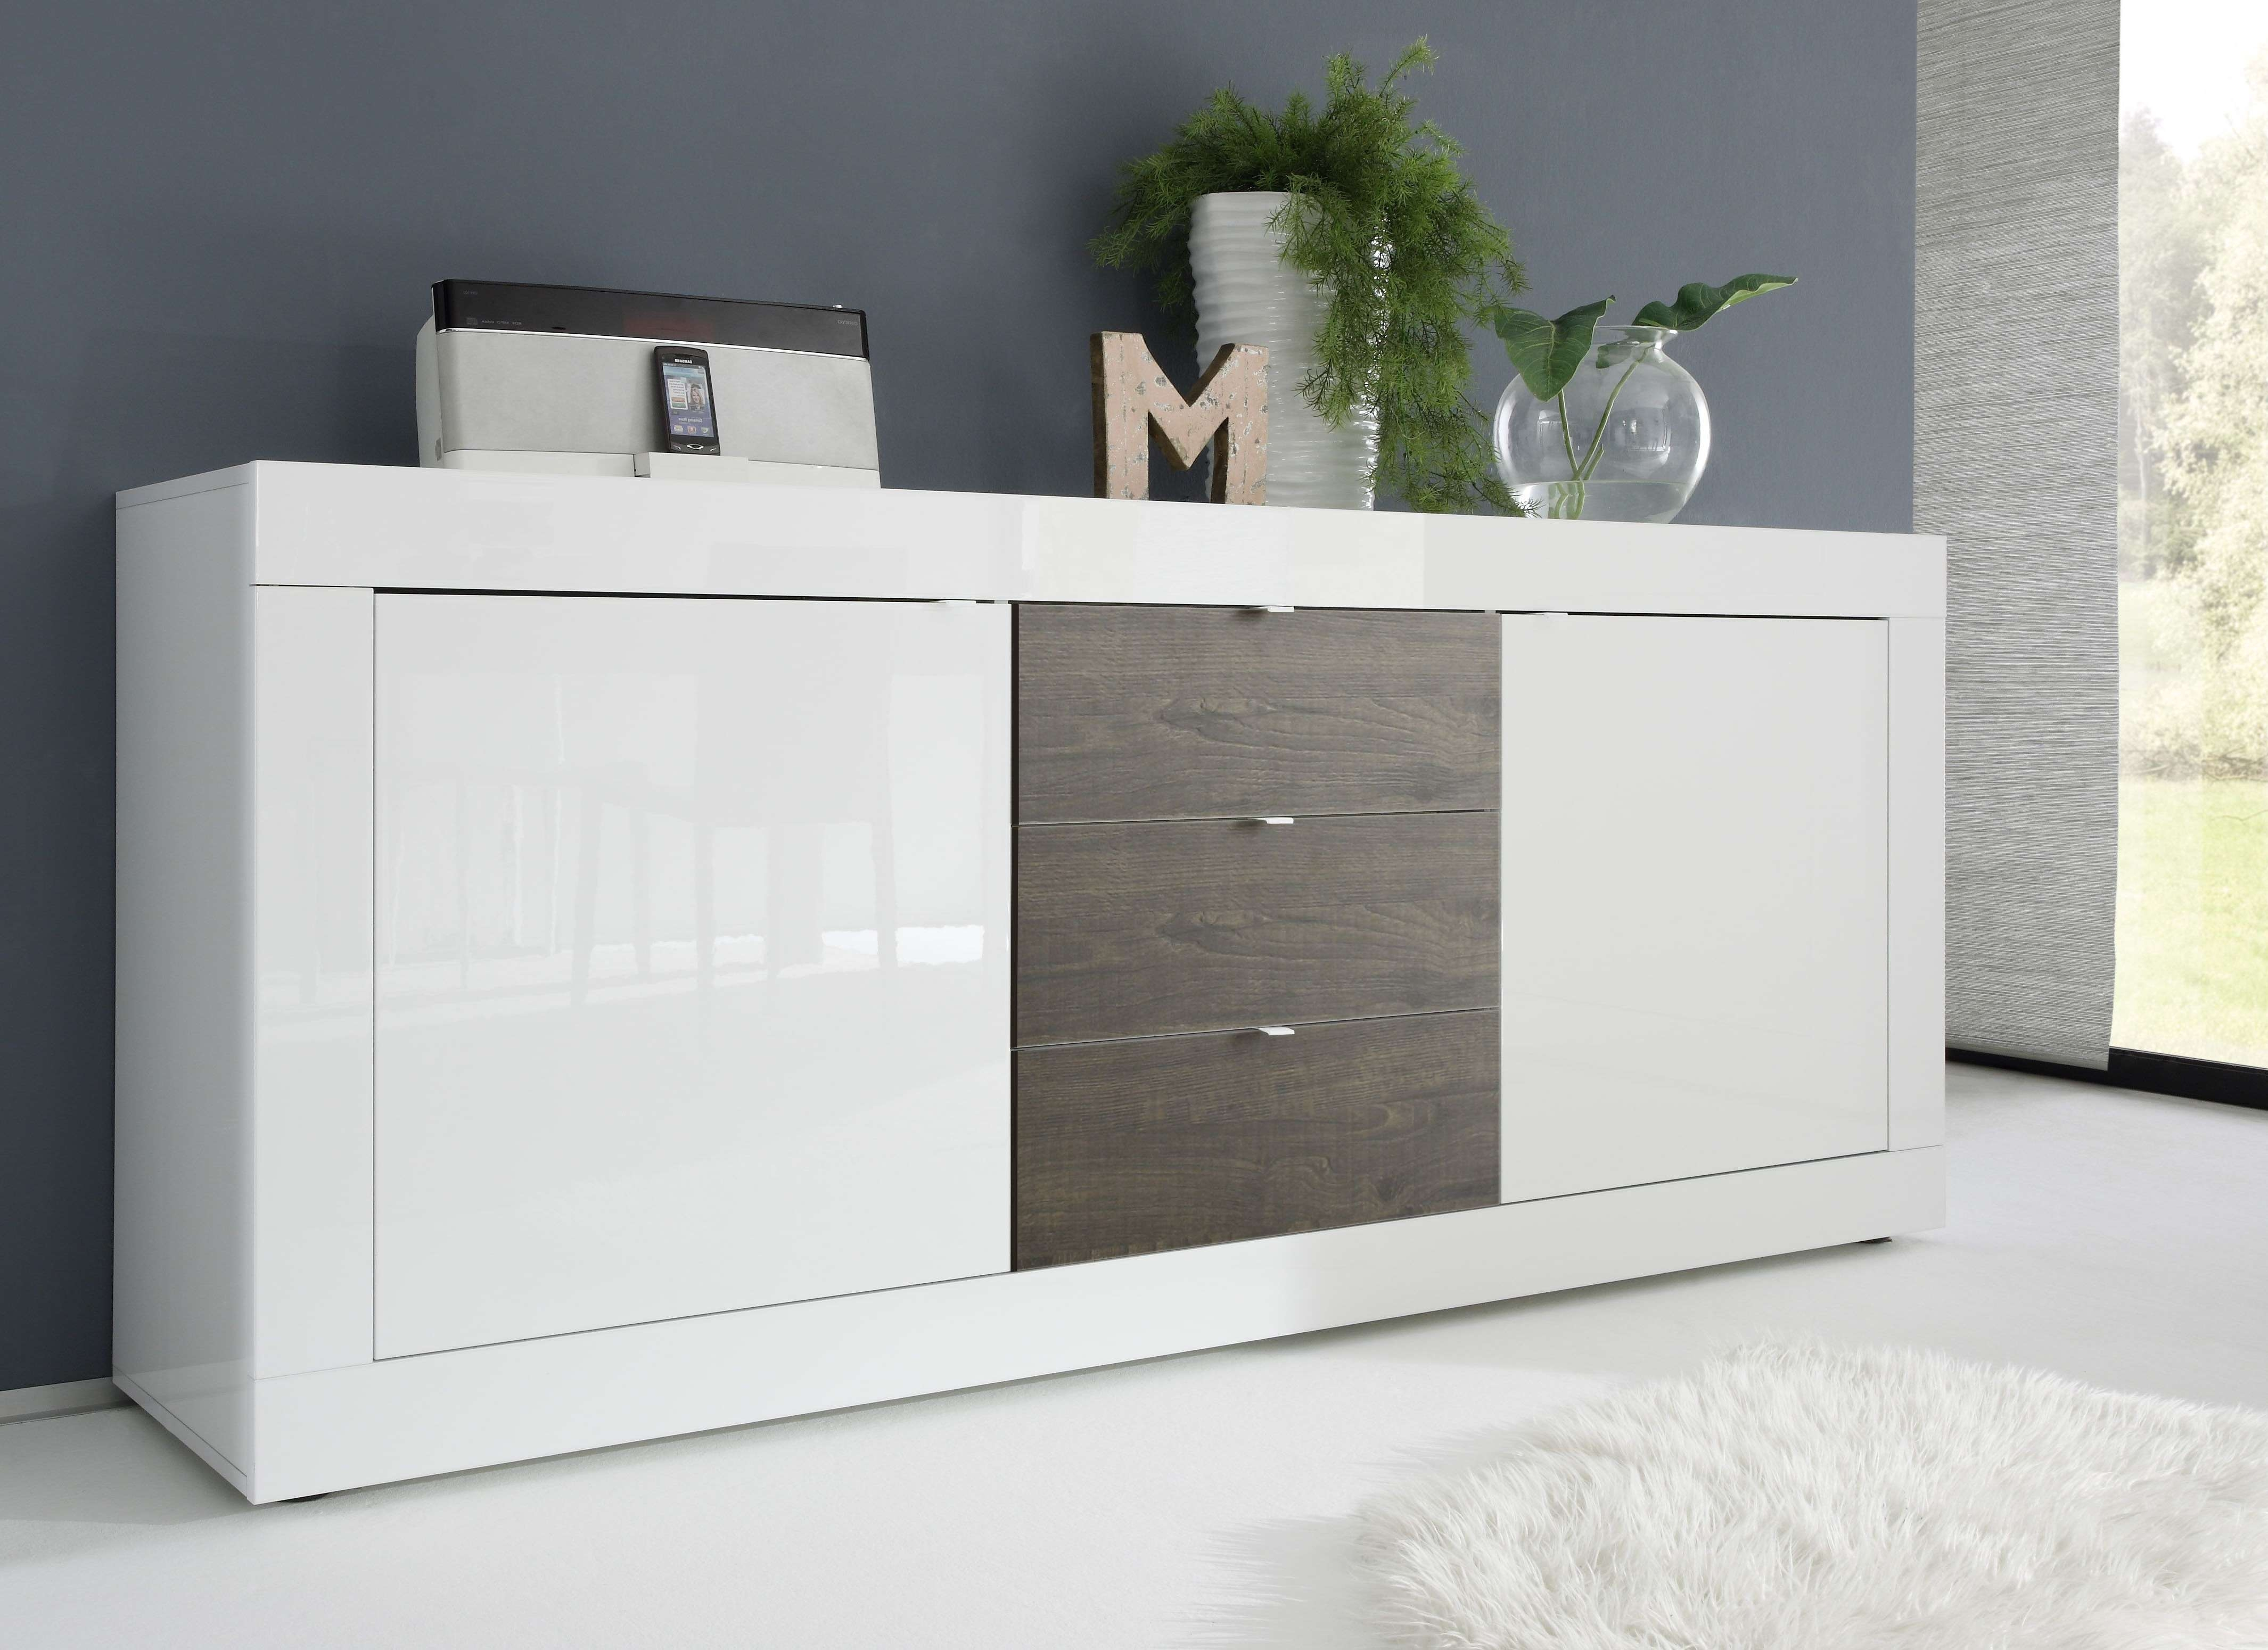 Dolcevita Ii White Gloss And Wenge Sideboard – Sideboards – Sena With Wenge Sideboards (View 4 of 20)